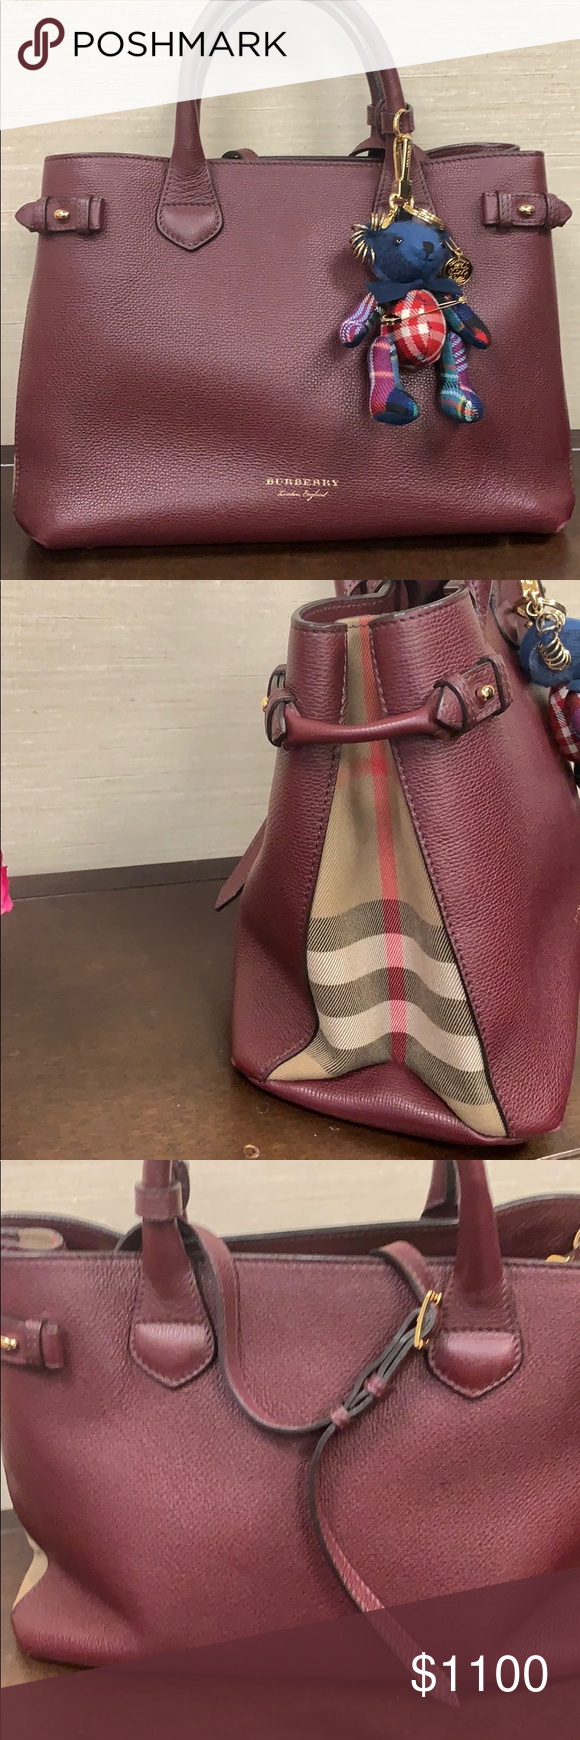 ec5017663a0 Burberry Medium Banner Leather tote in Burgundy Medium tote with four  inside compartments for storage.